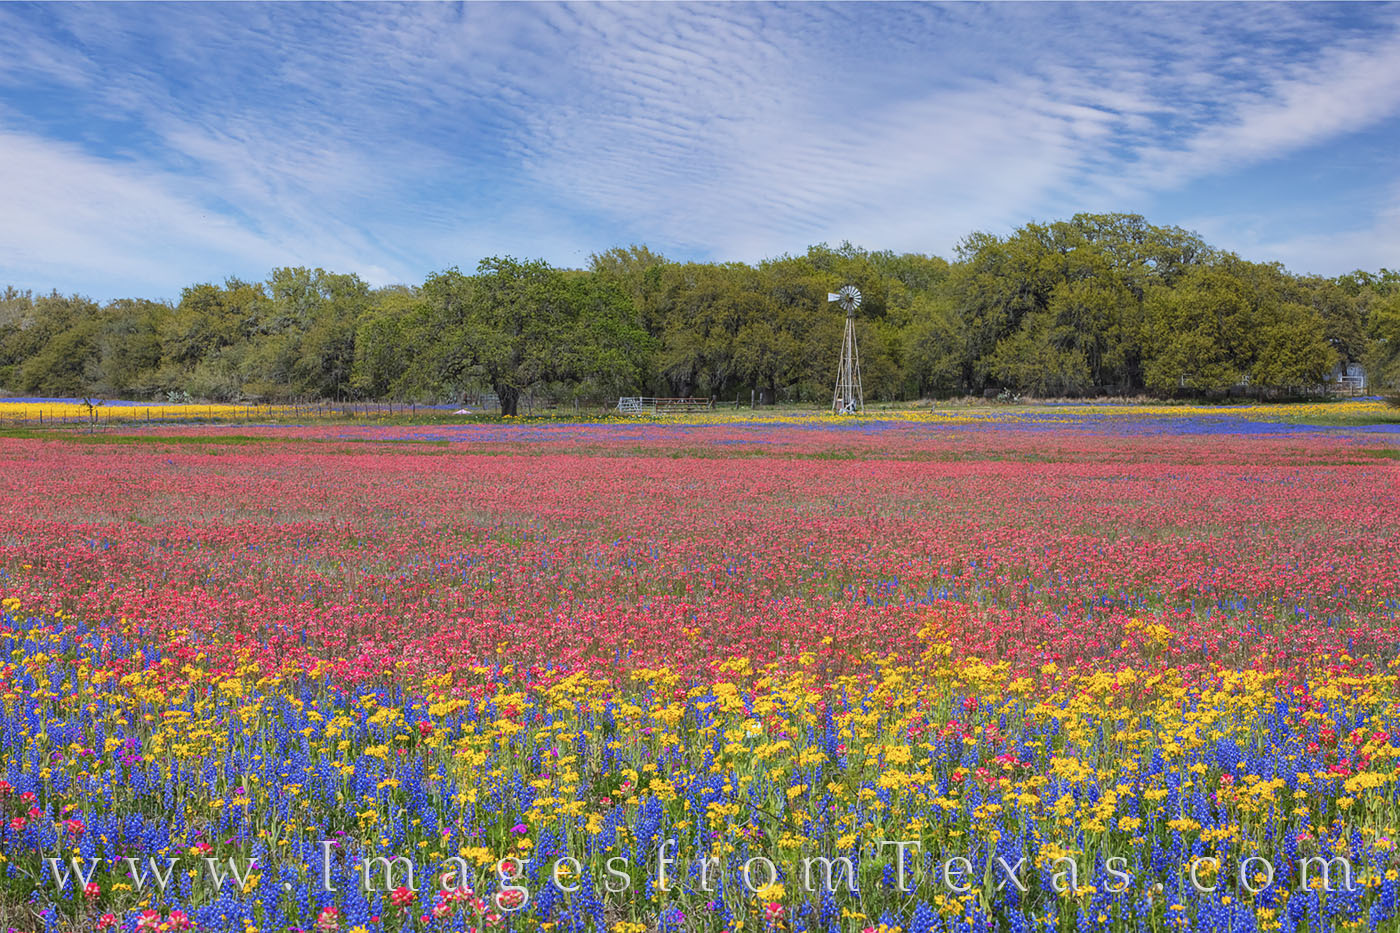 wildflowers, poteet, bluebonnets, paintbrush, groundsel, phlox, windmill, san antonio, south texas, color, spring, blue, red, yellow, purple